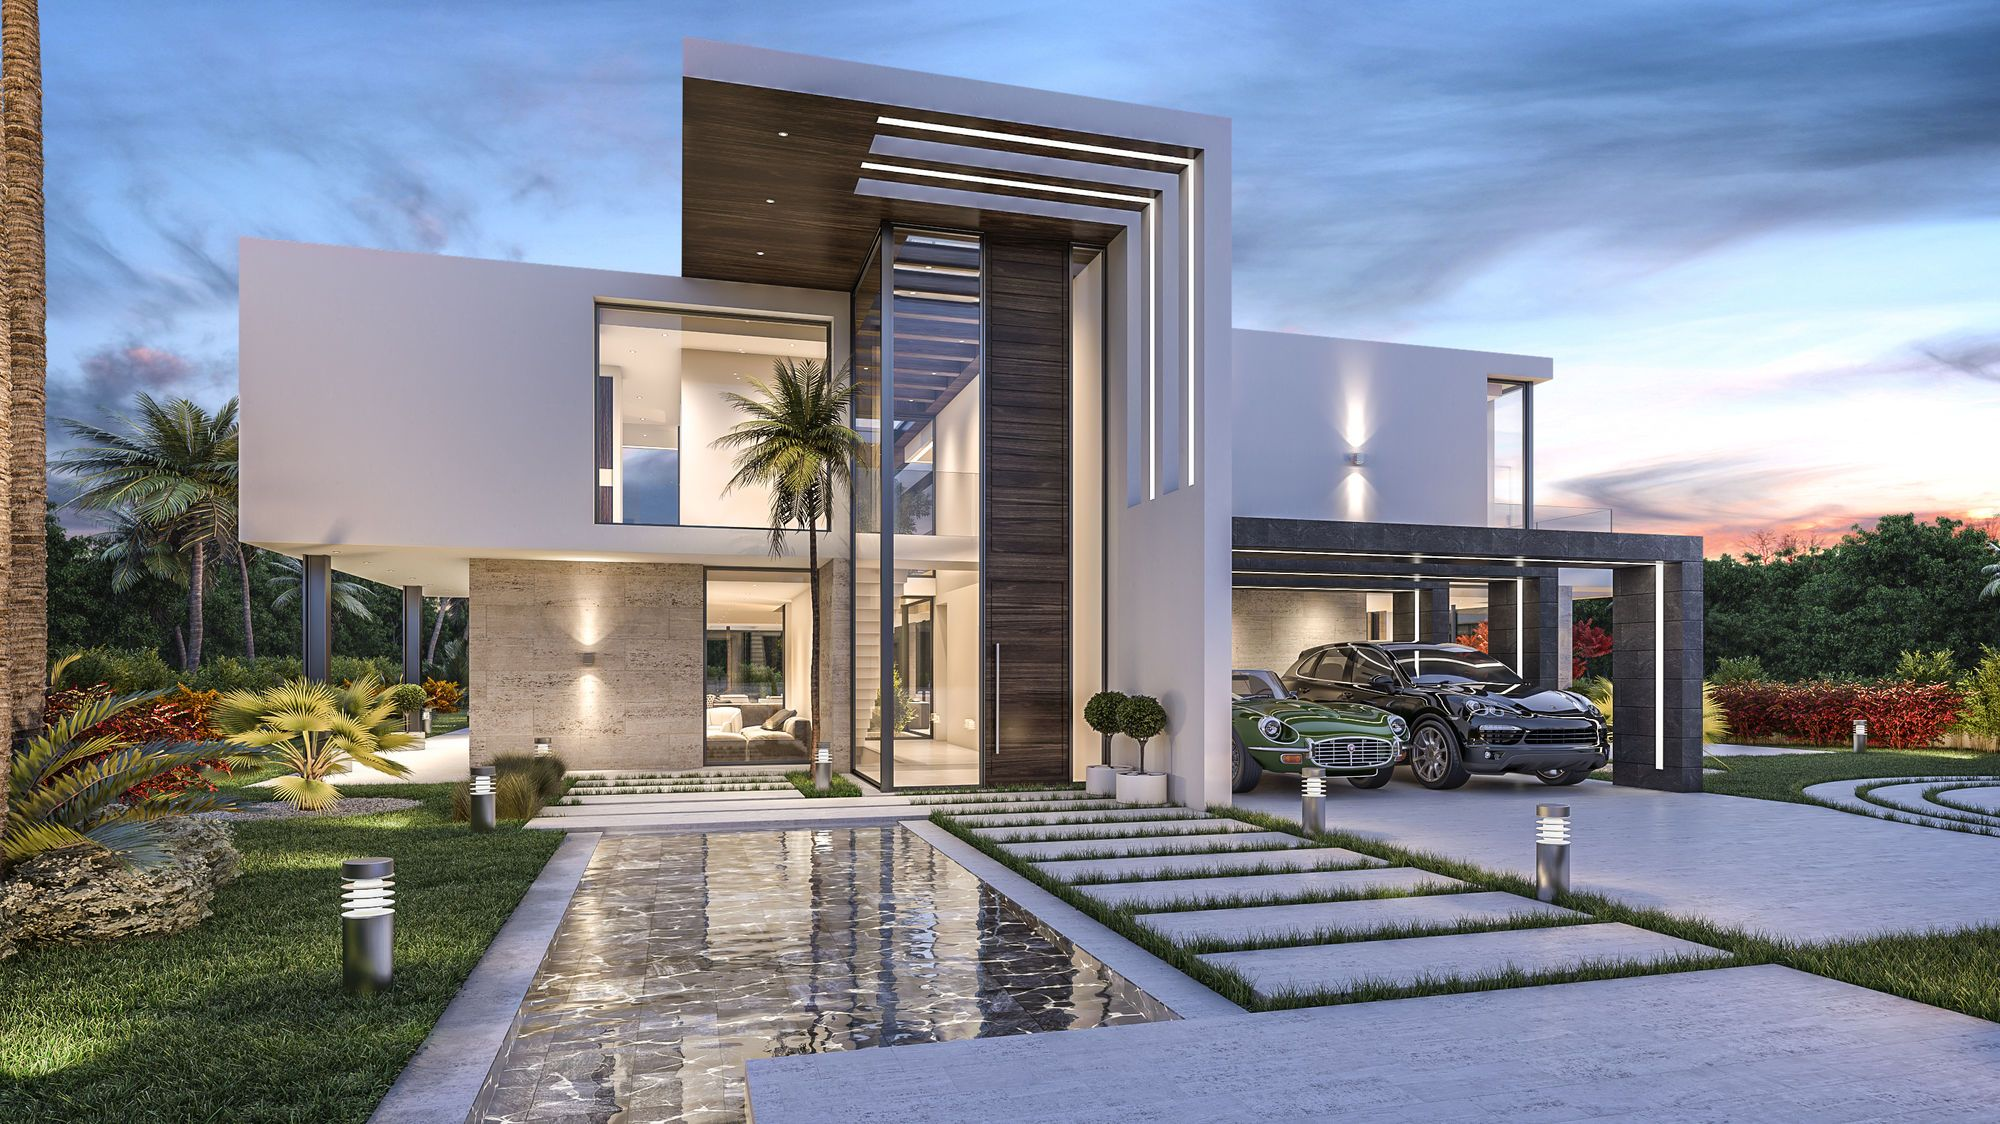 New modern luxury villa project in marbella spain for Luxury home plans magazine